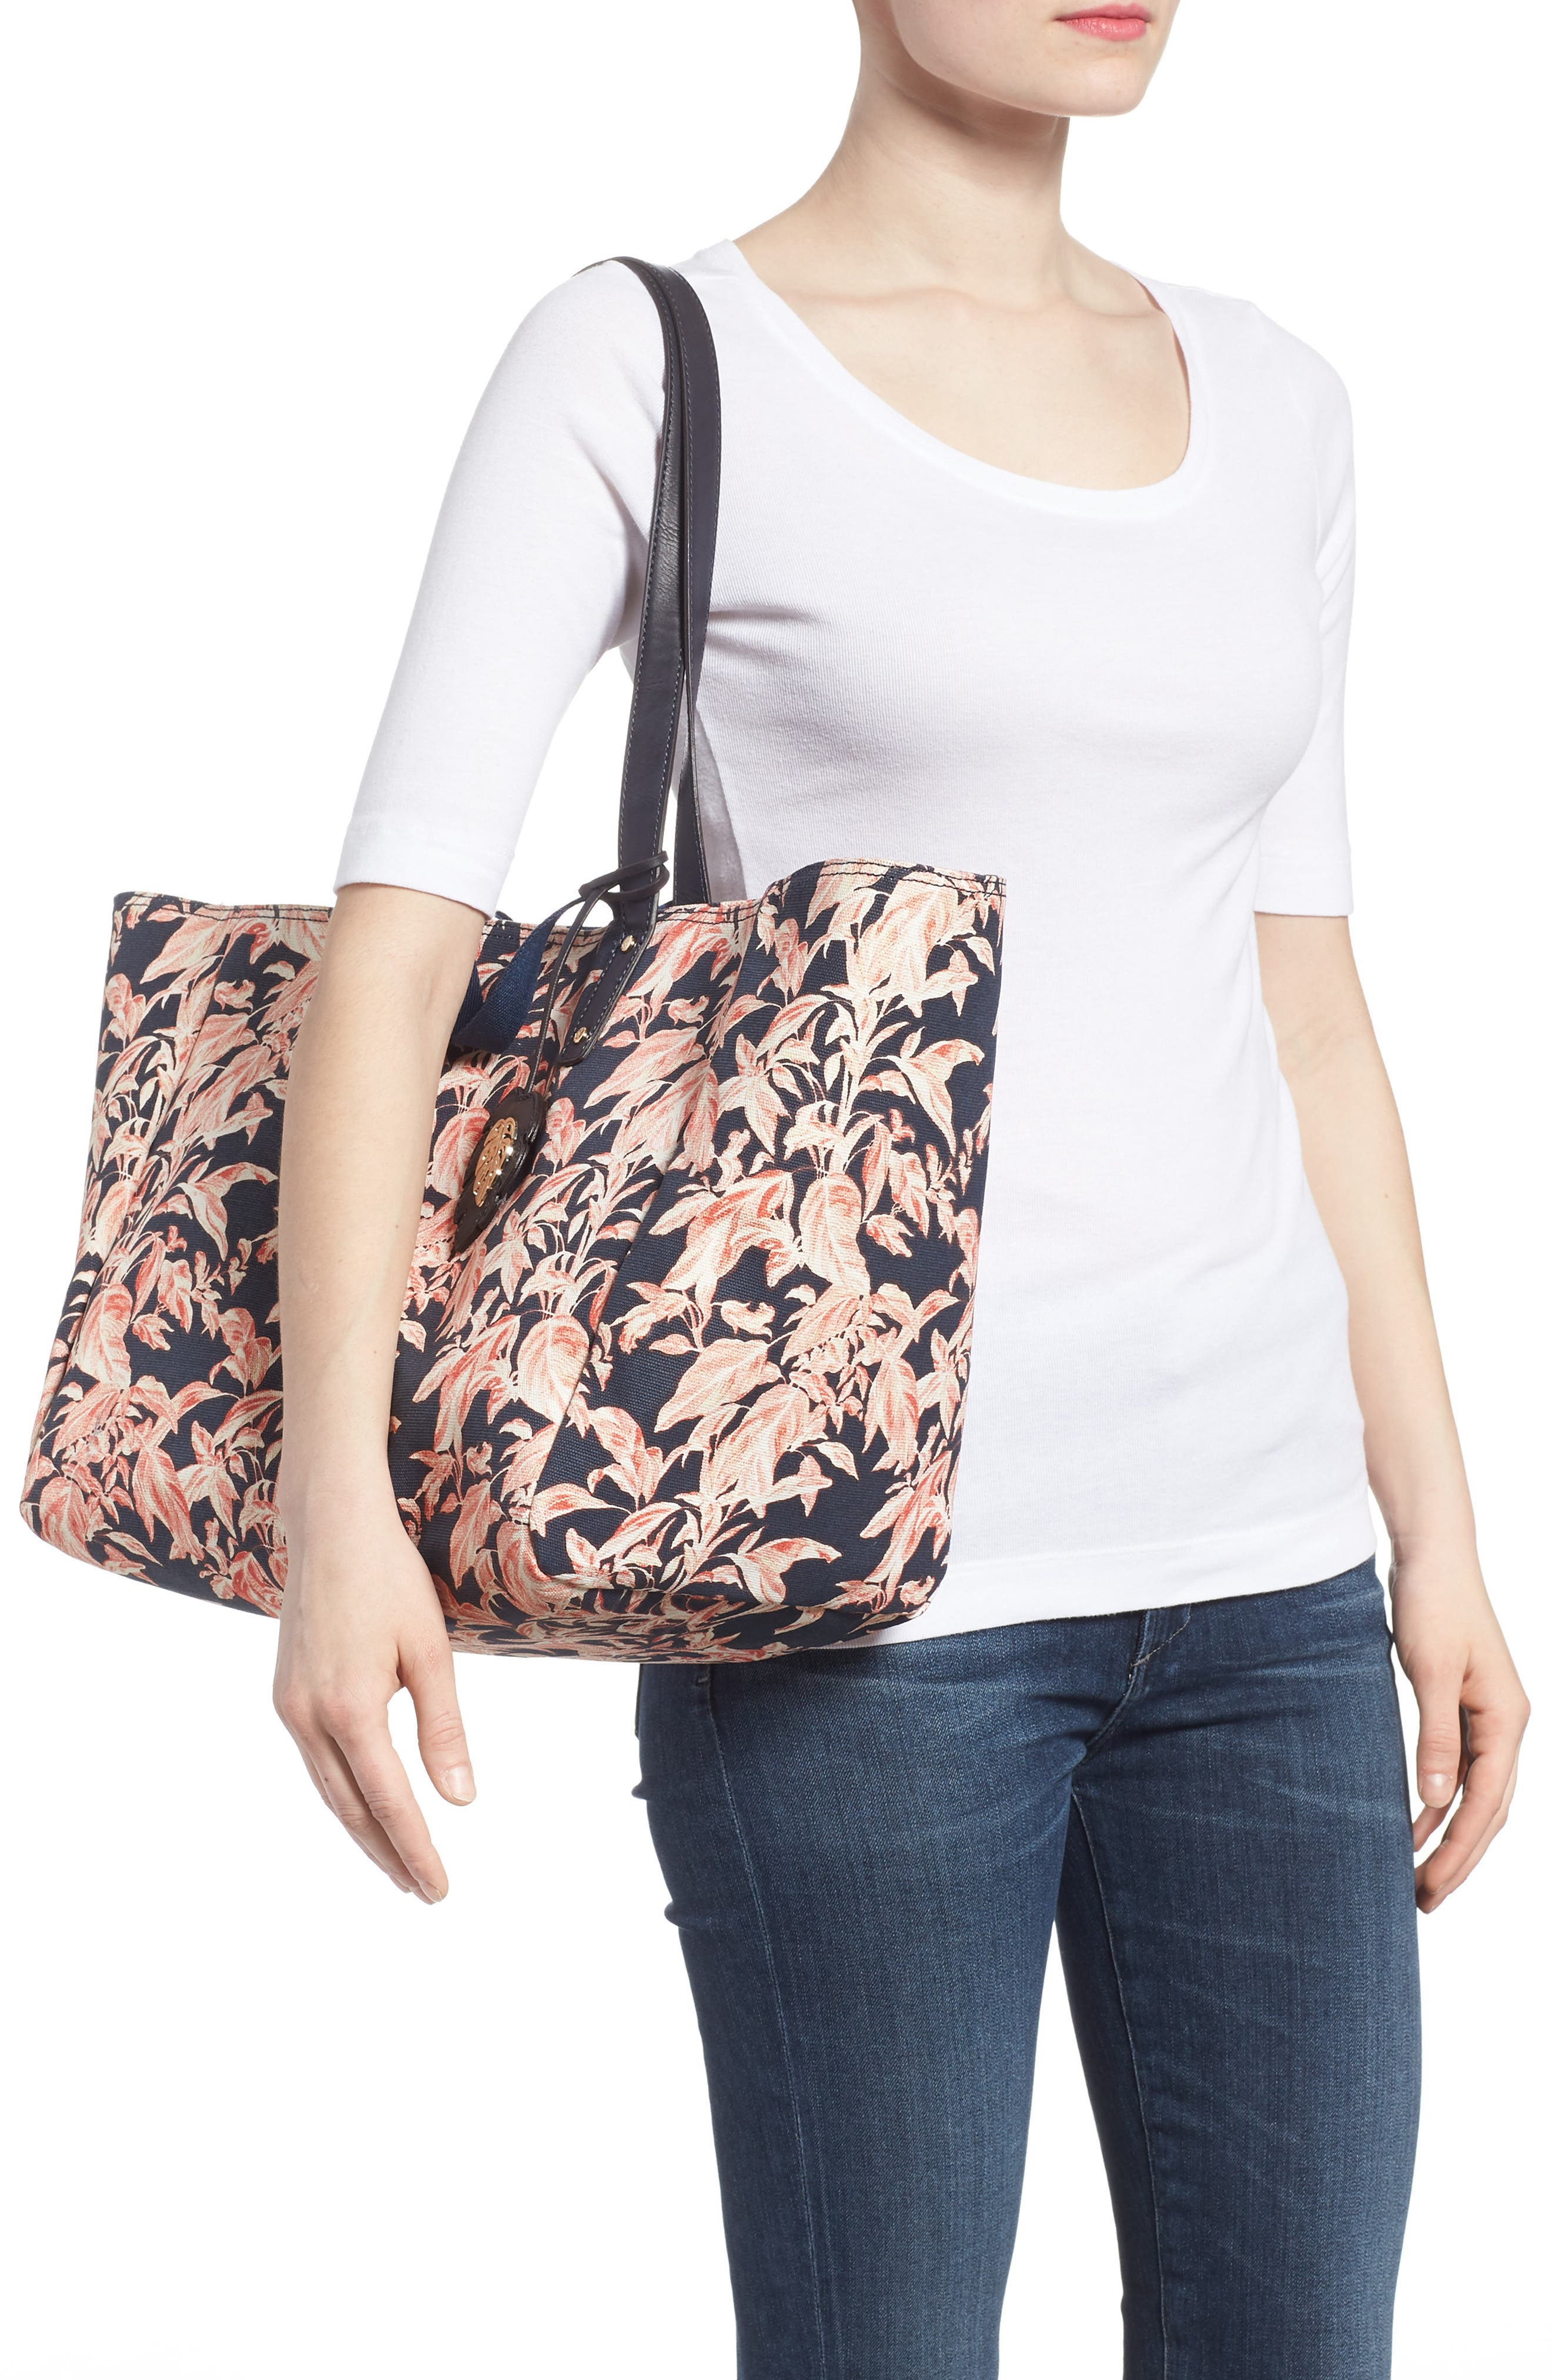 La Plancha Beach Tote,                             Alternate thumbnail 2, color,                             Navy